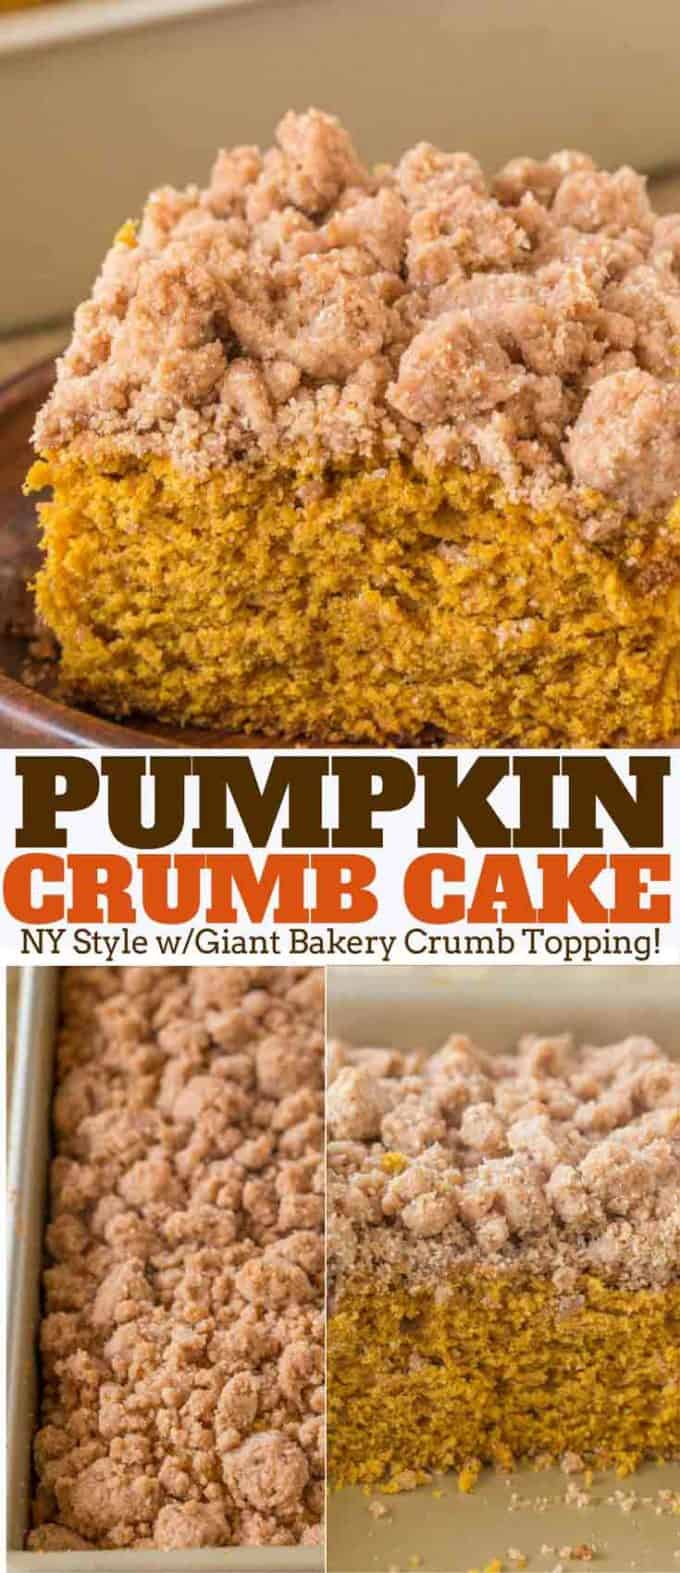 Pumpkin Crumb Cake with a New York Bakery Style giant brown sugar crumble topping is a fall bakery treat you'll enjoy for breakfasts all winter long. #pumpkin #crumbcake #recipe #coffeecake dinnerthendessert.com